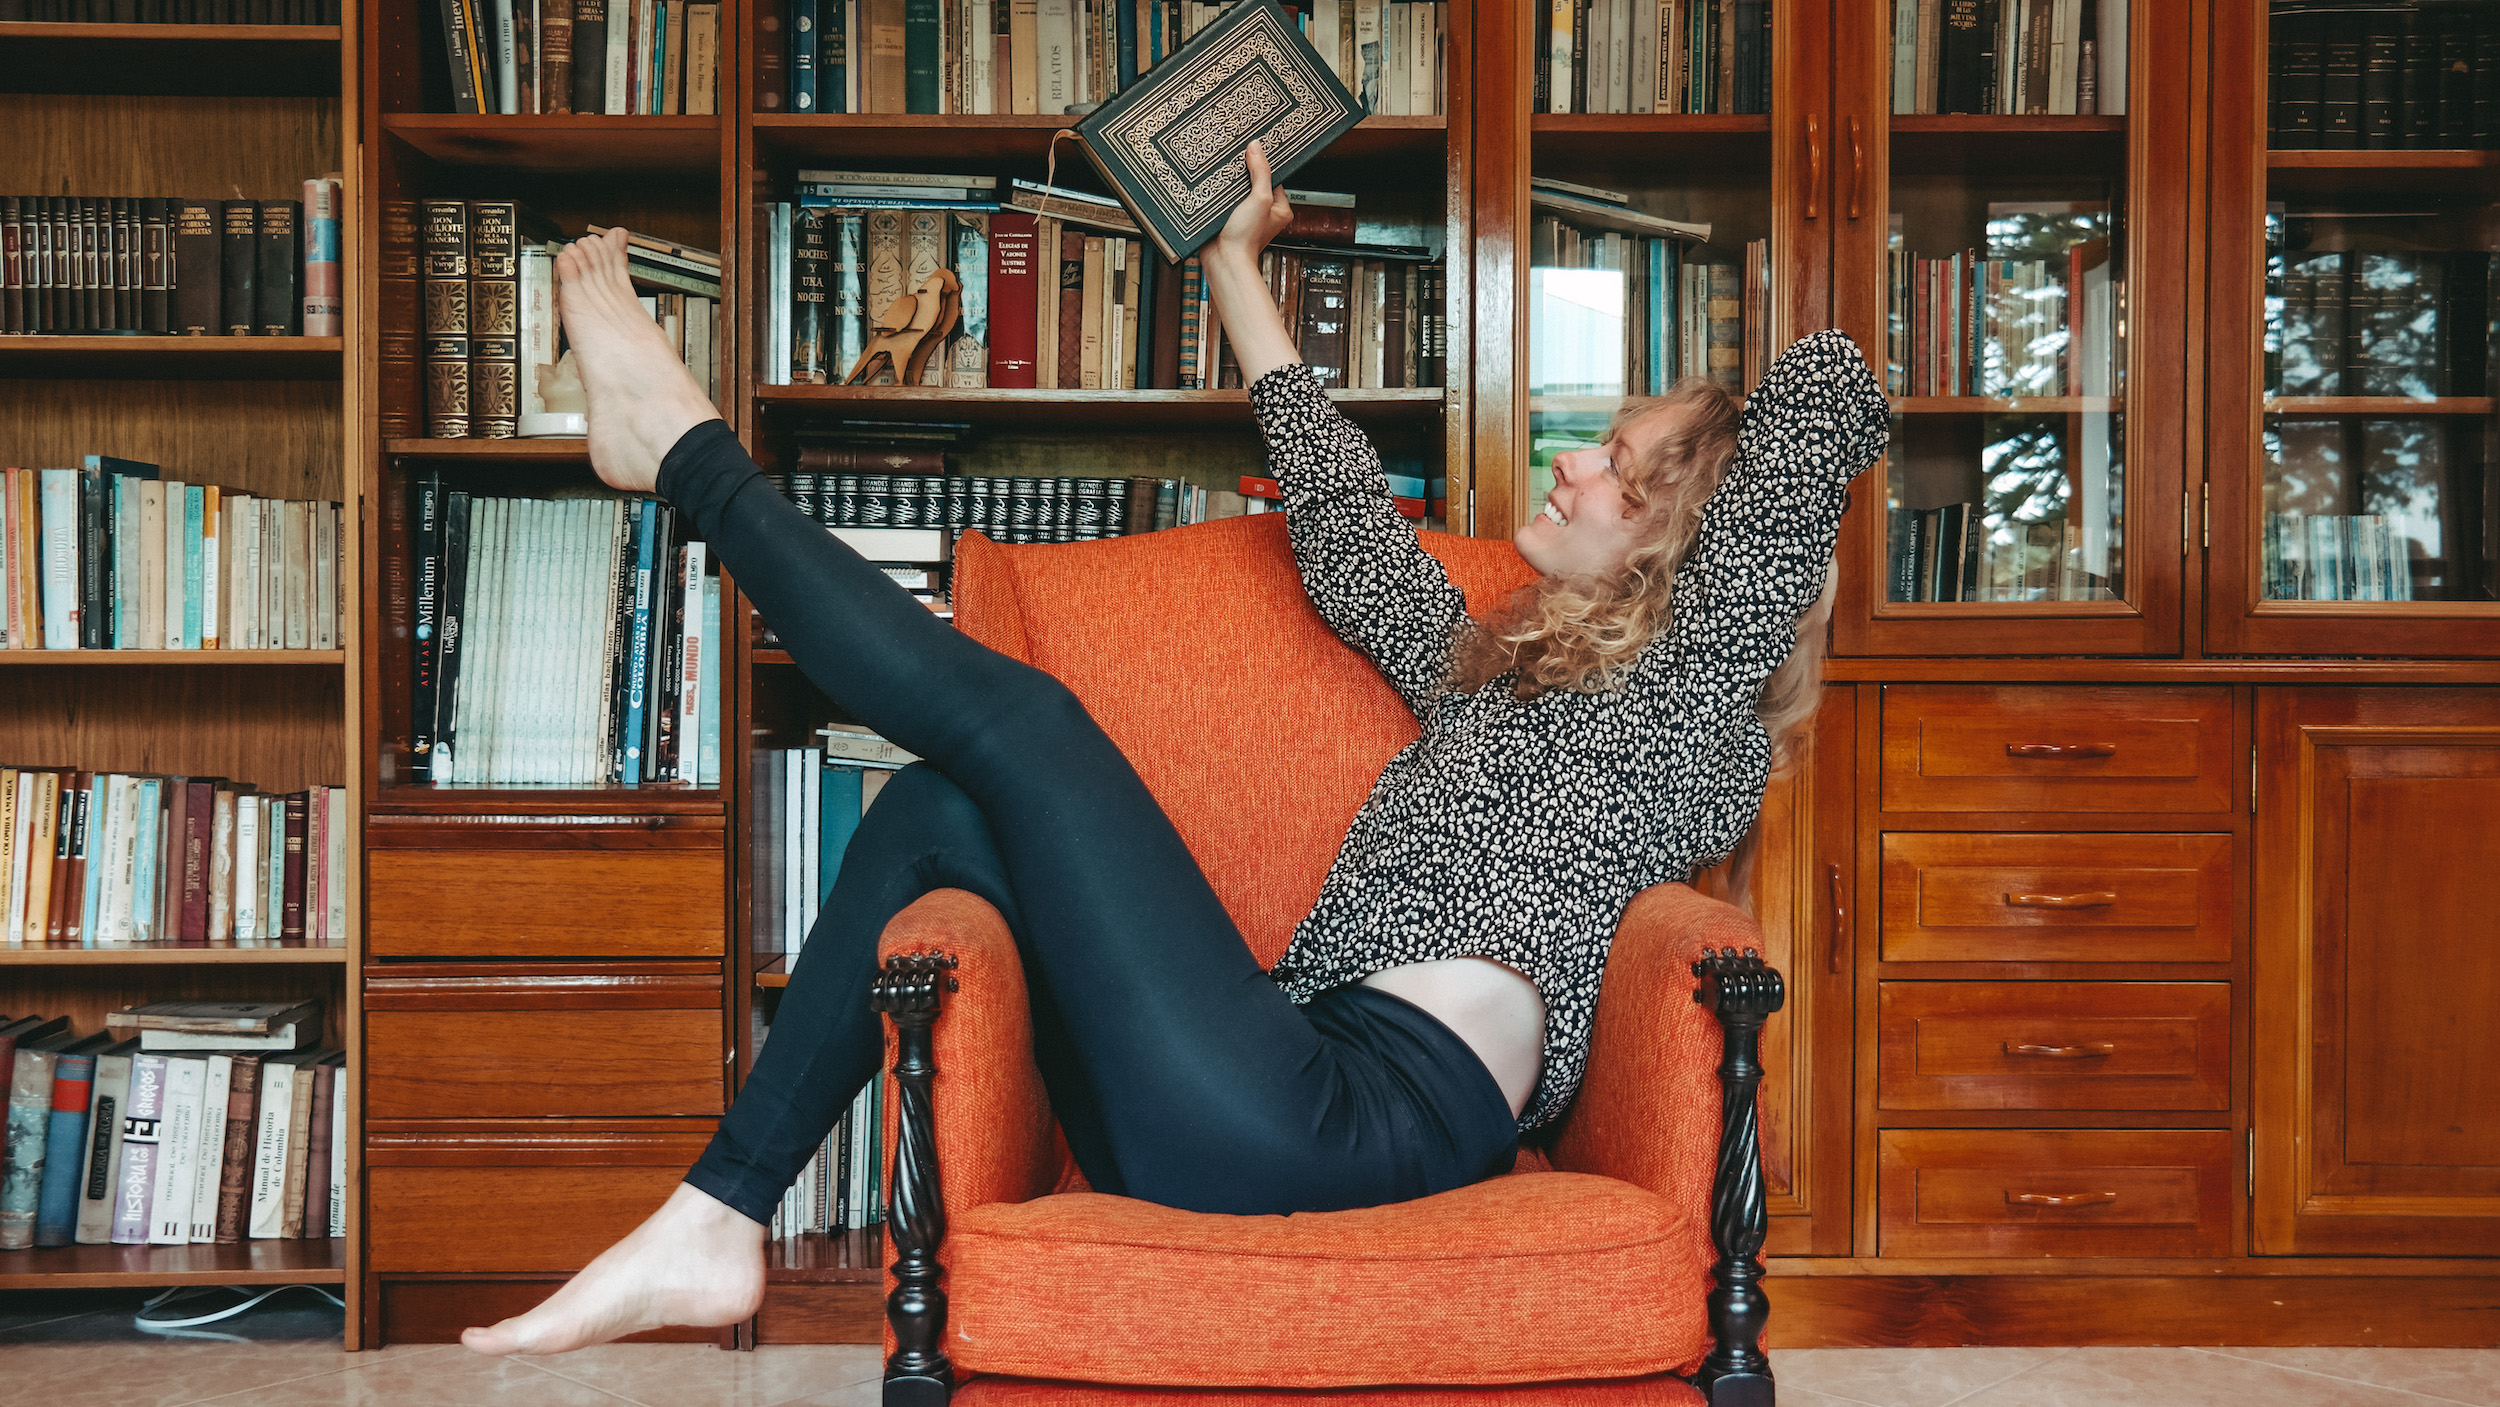 woman on an orange chair in a library holding a book